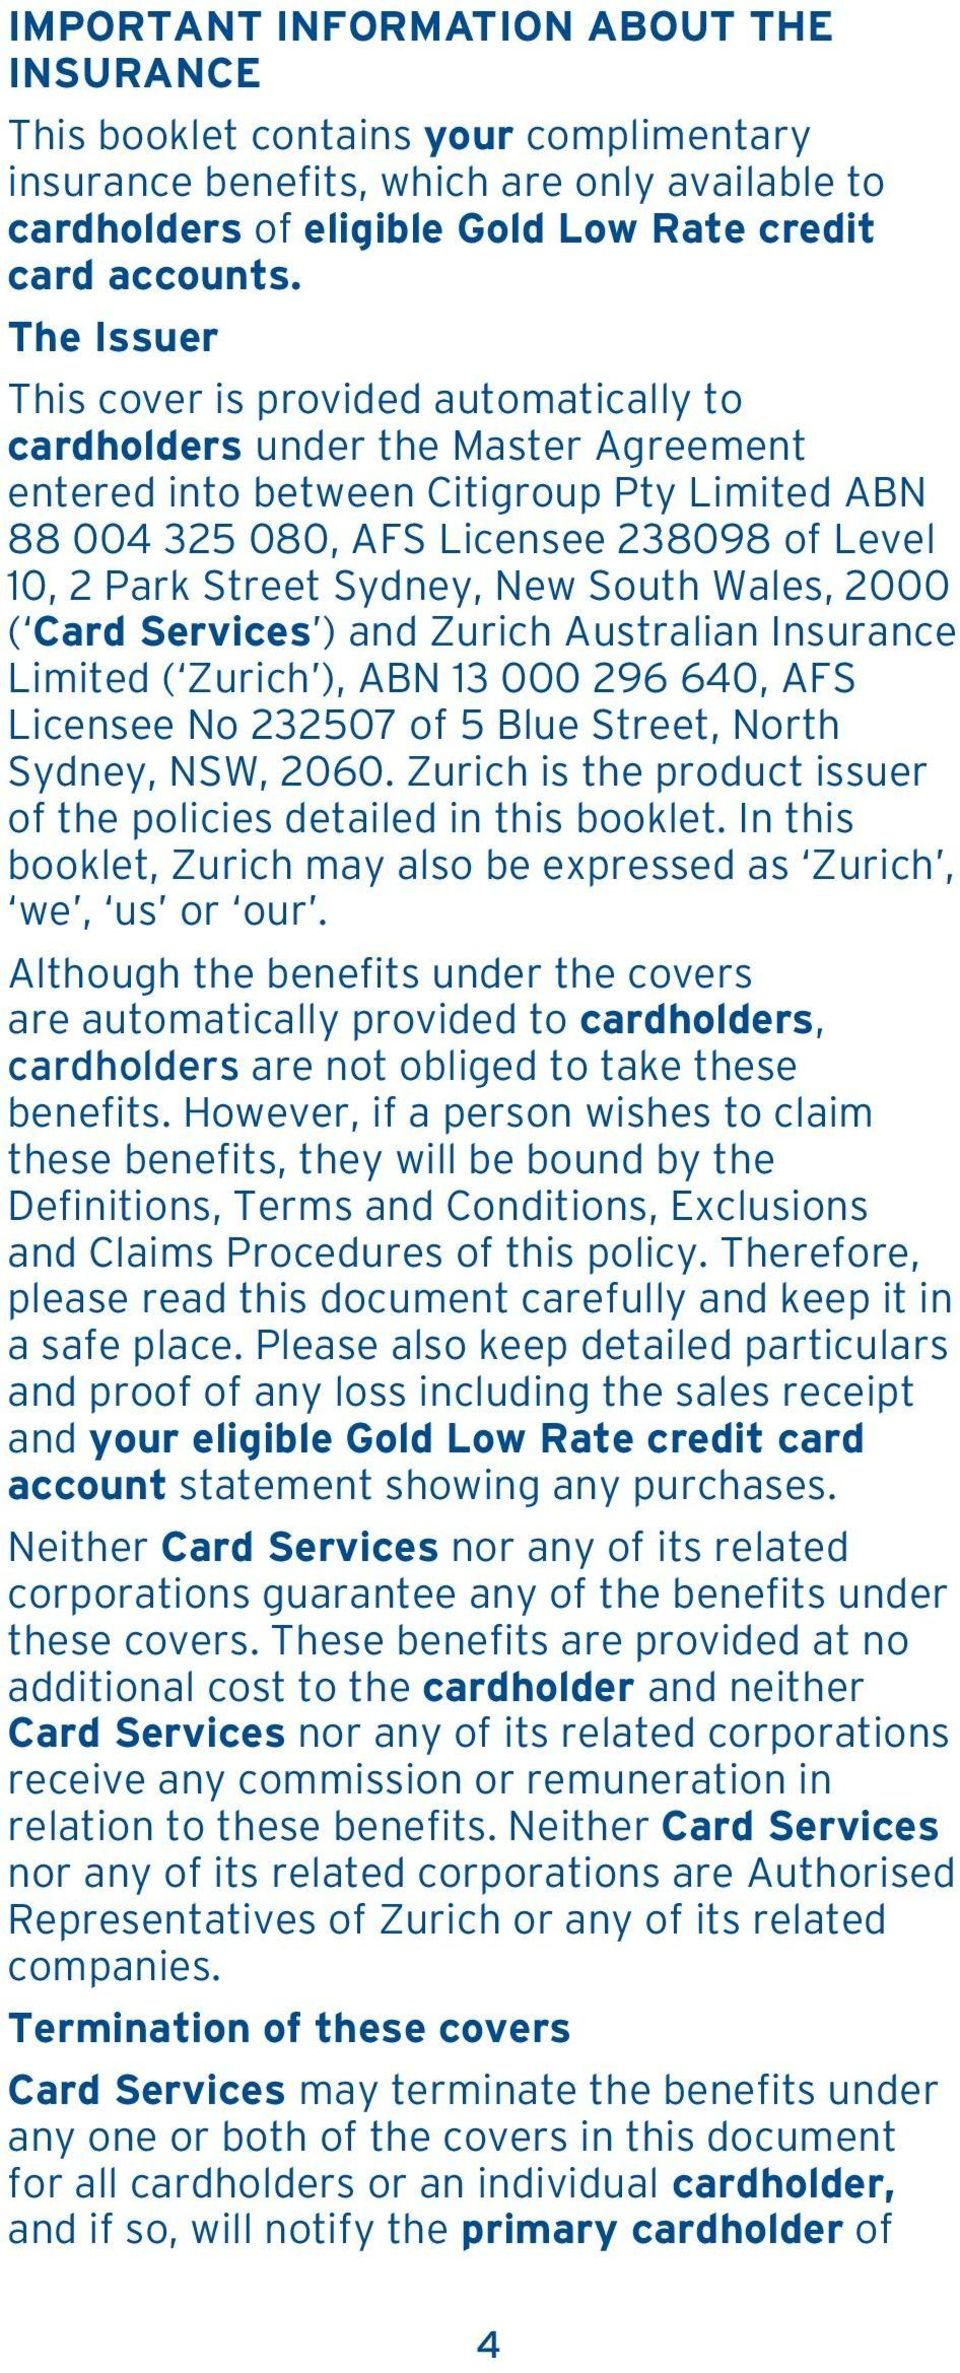 Sydney, New South Wales, 2000 ( Card Services ) and Zurich Australian Insurance Limited ( Zurich ), ABN 13 000 296 640, AFS Licensee No 232507 of 5 Blue Street, North Sydney, NSW, 2060.